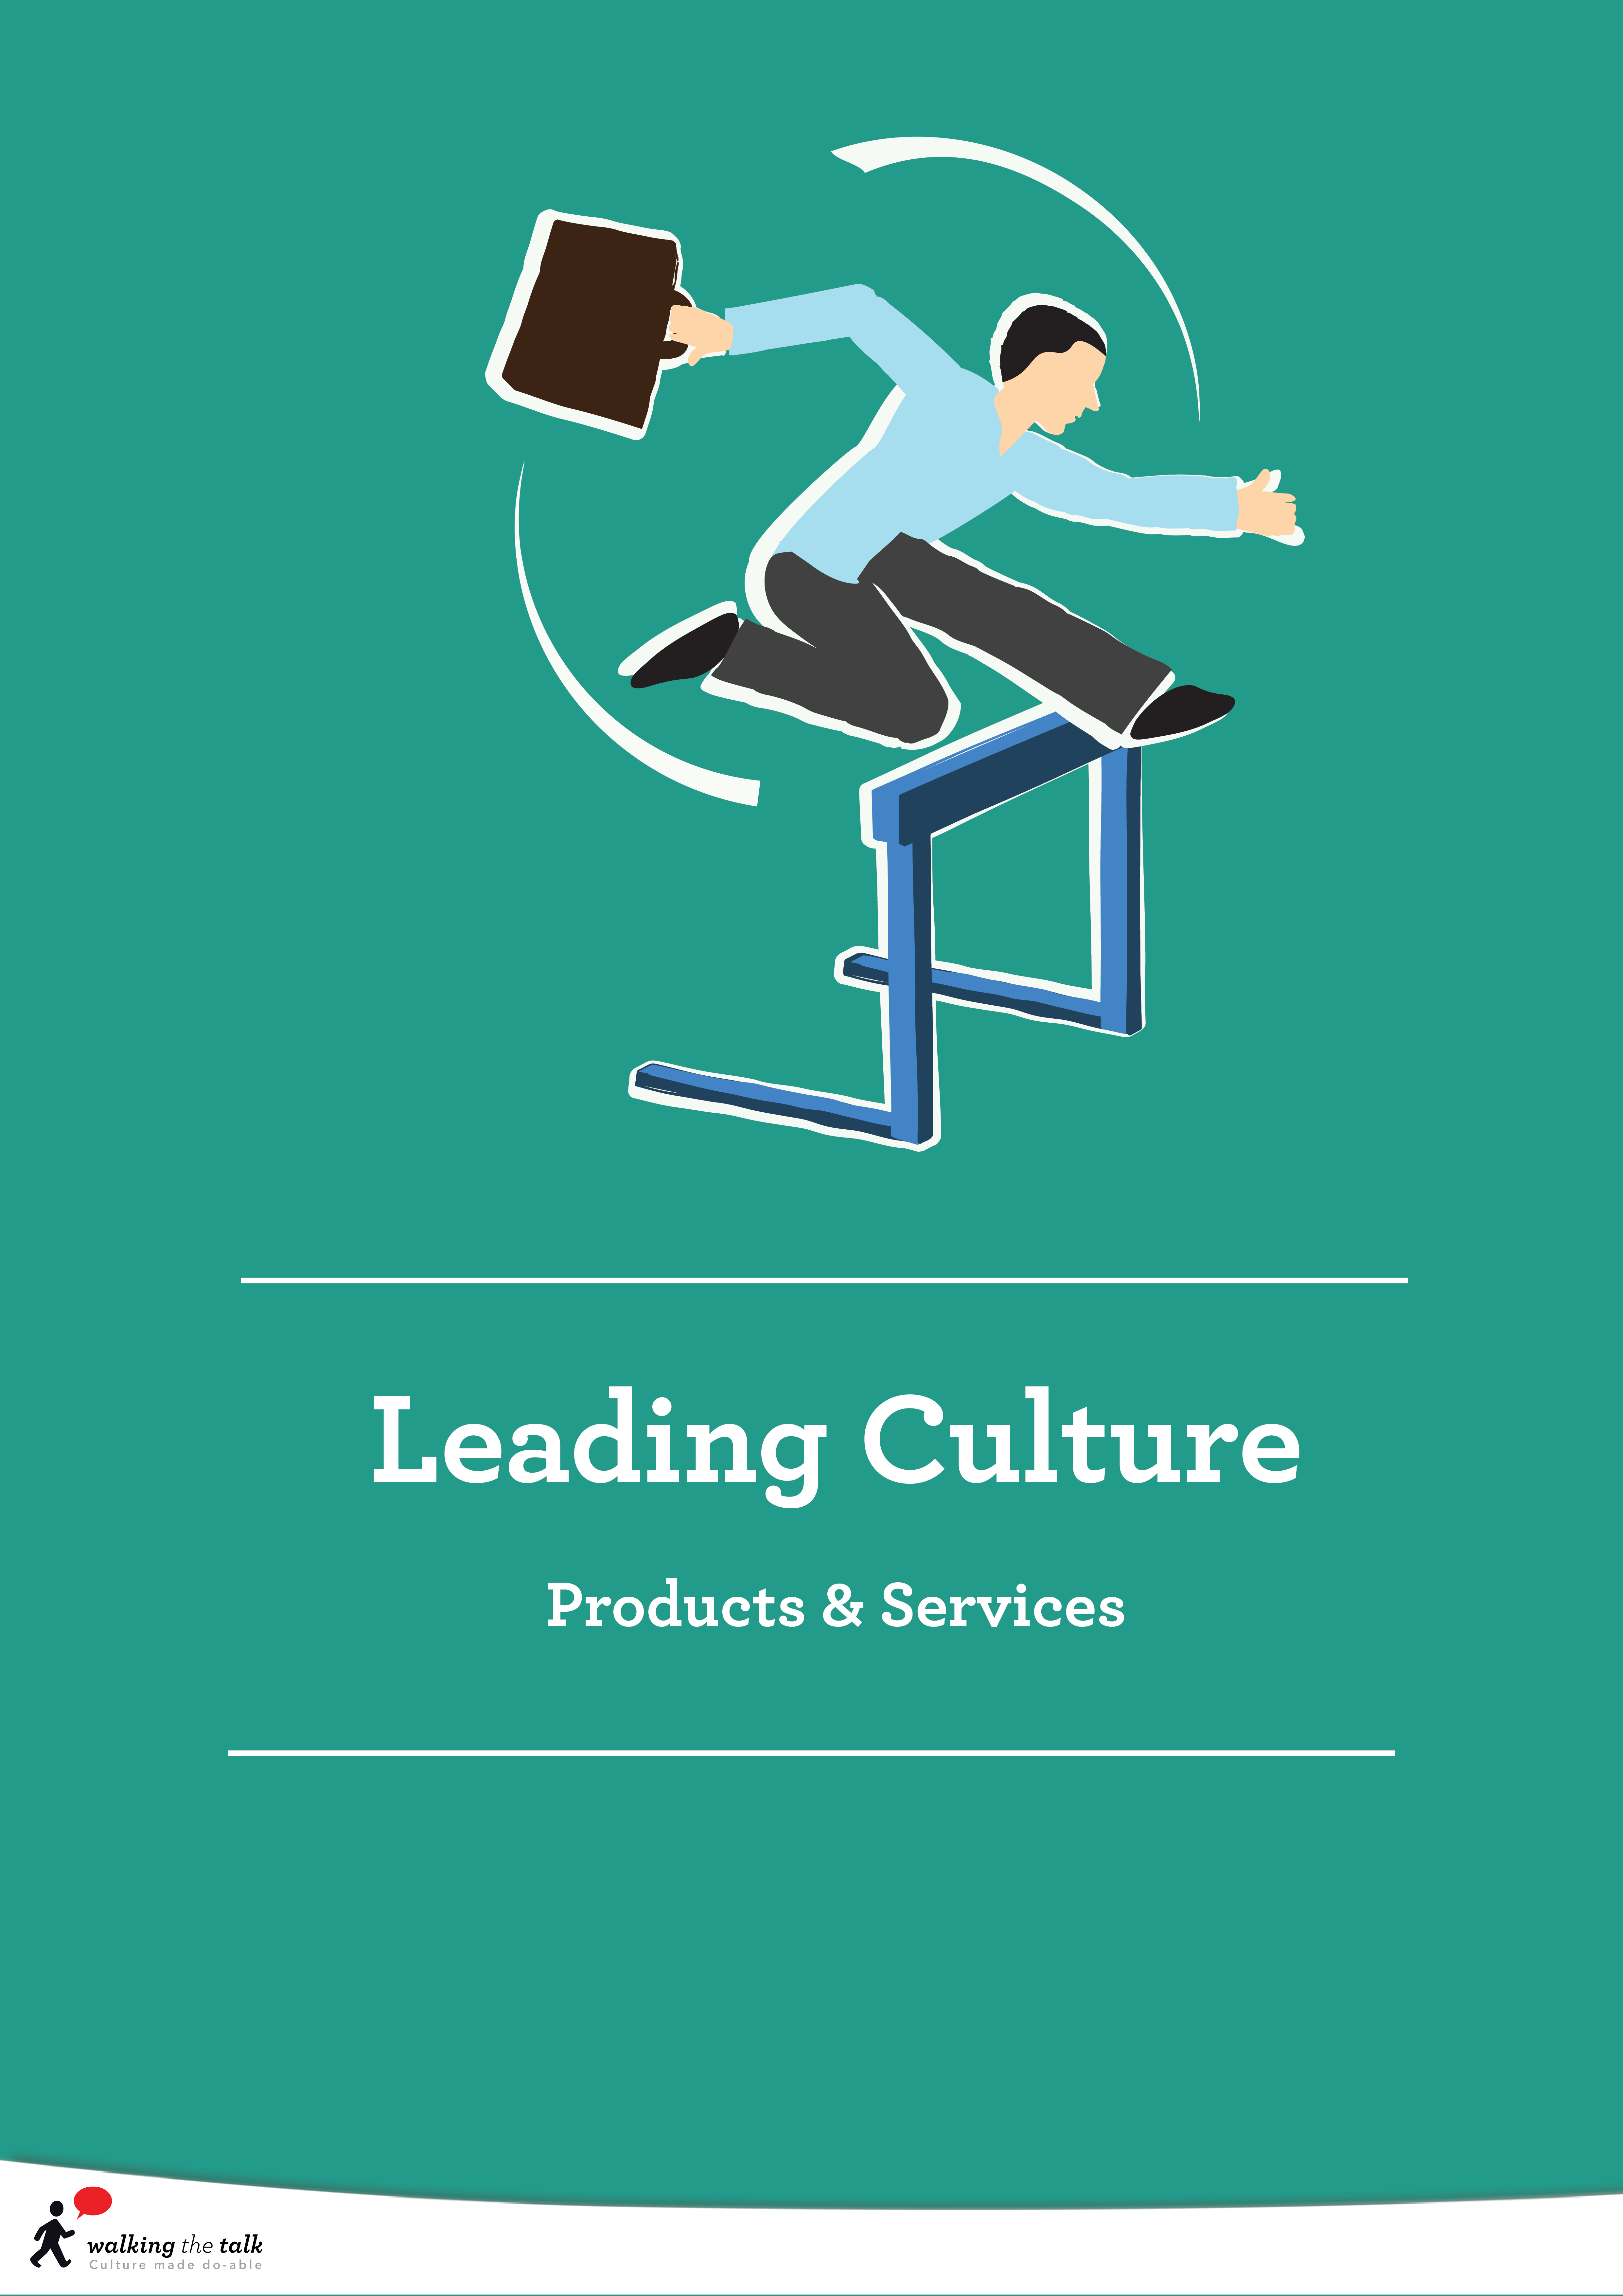 How to use symbols and systems to establish culture as a team leader